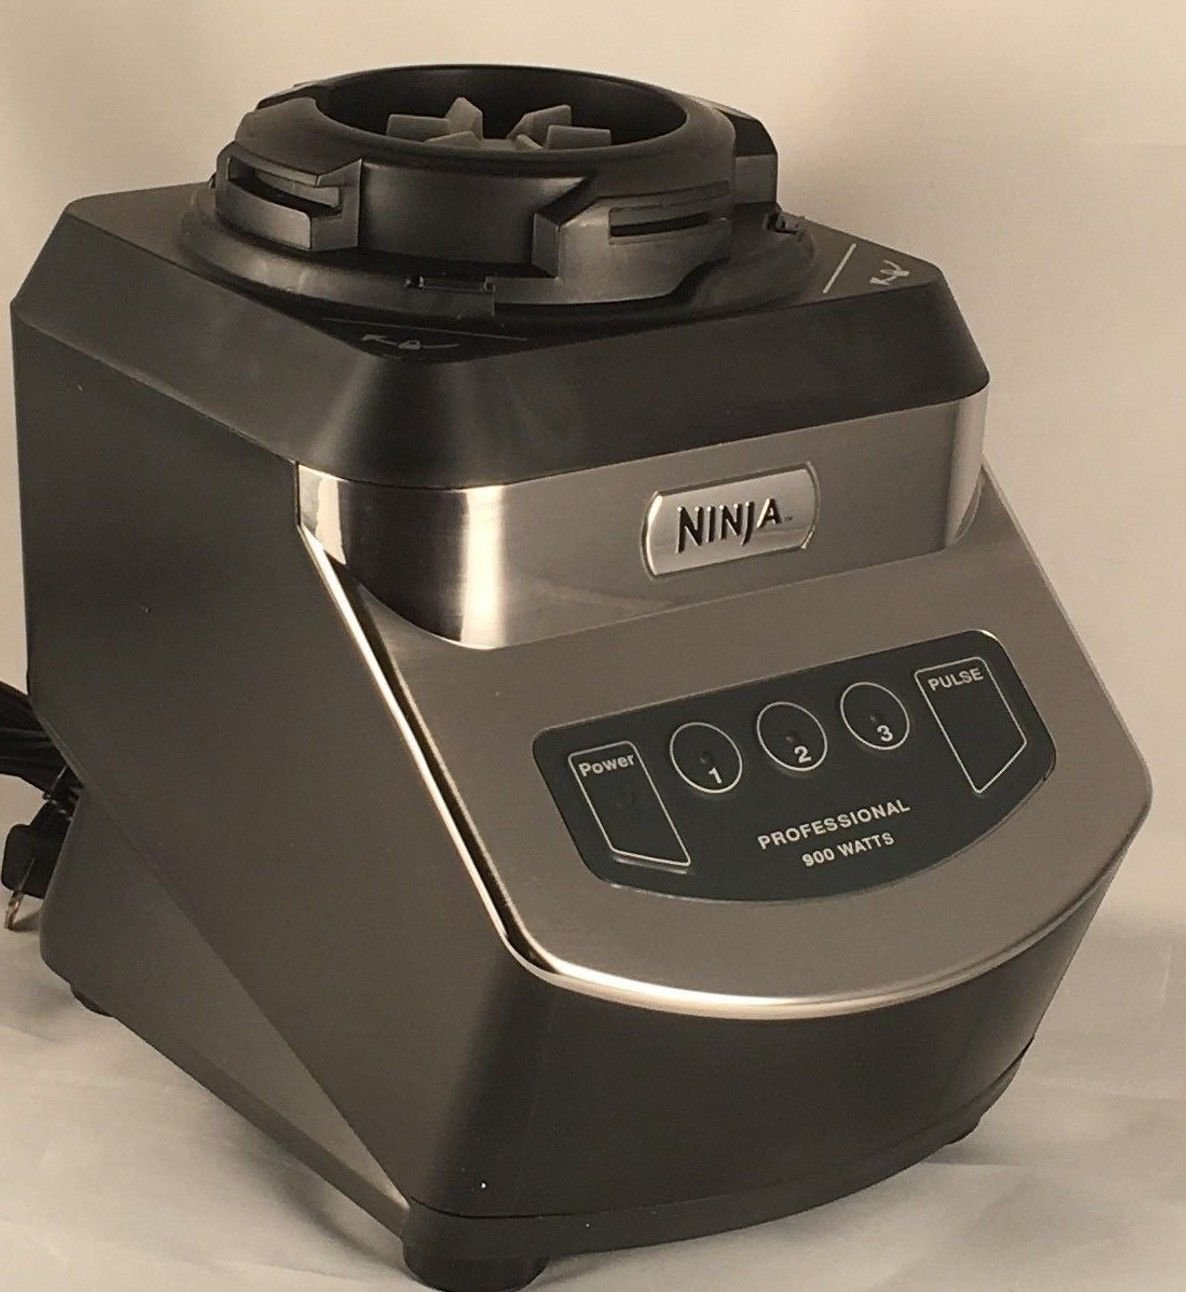 Ninja Kitchen Blender NJ600 NJ602 BL610 BL700 , 900 Watt Replacement Power Motor Base